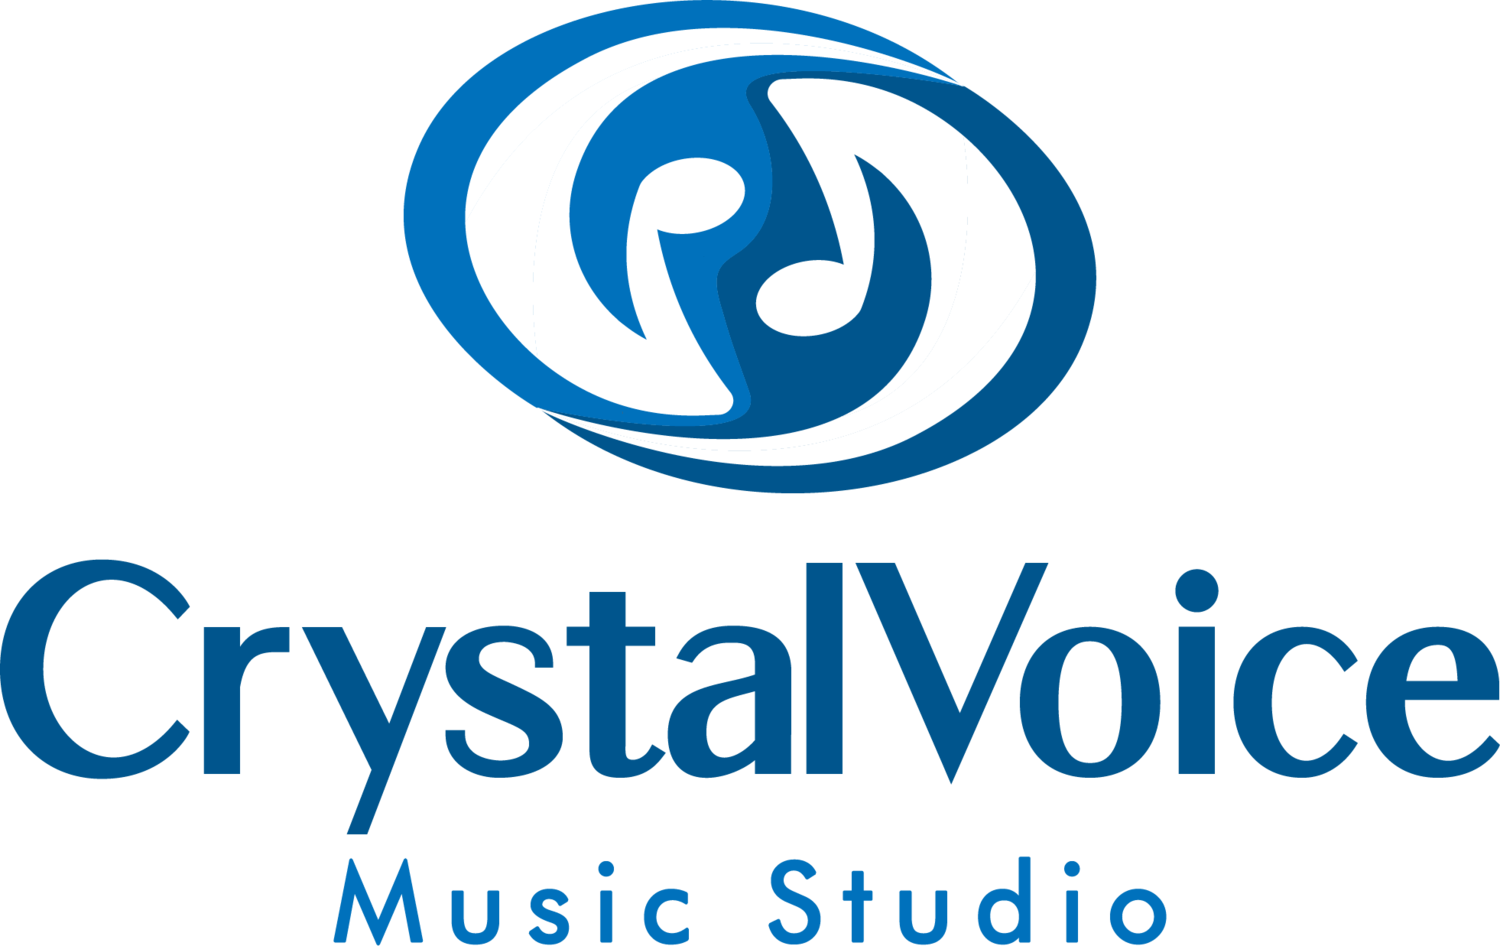 CrystalVoice Studio